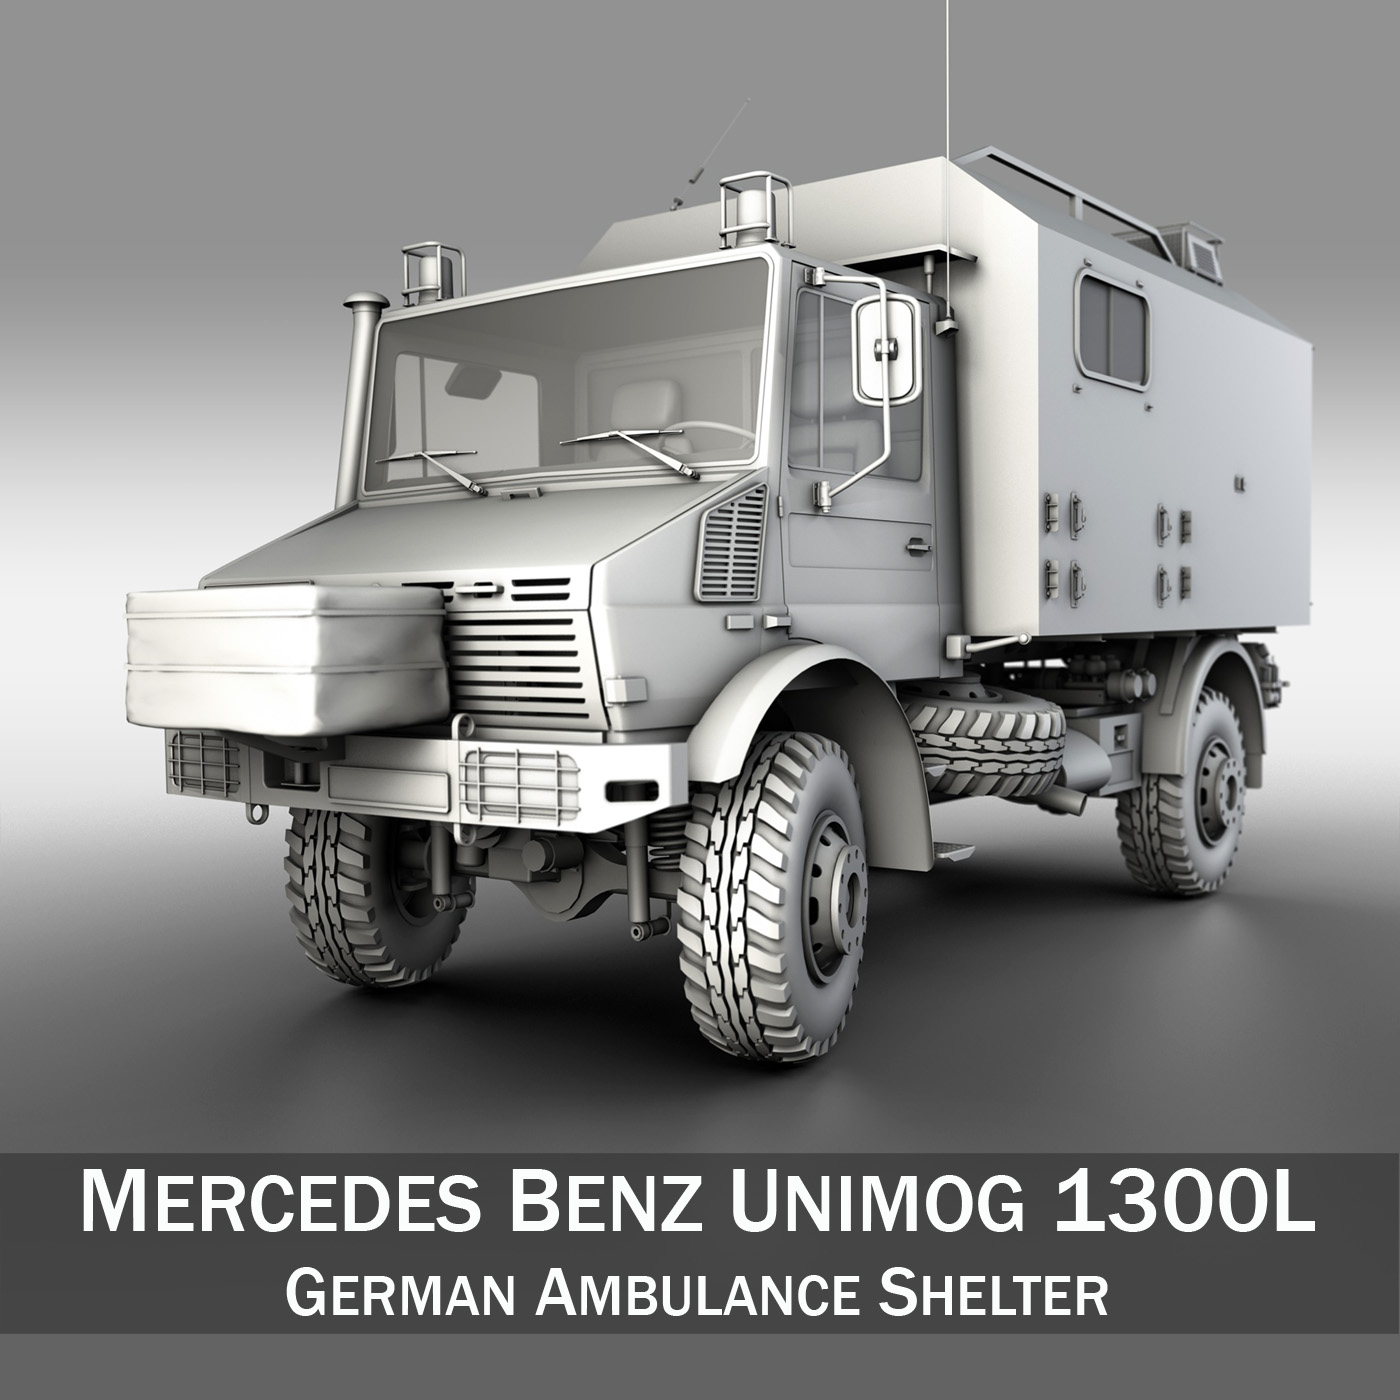 mercedes benz unimog u1300l ambulance 3d model 3ds fbx c4d lwo obj 189534